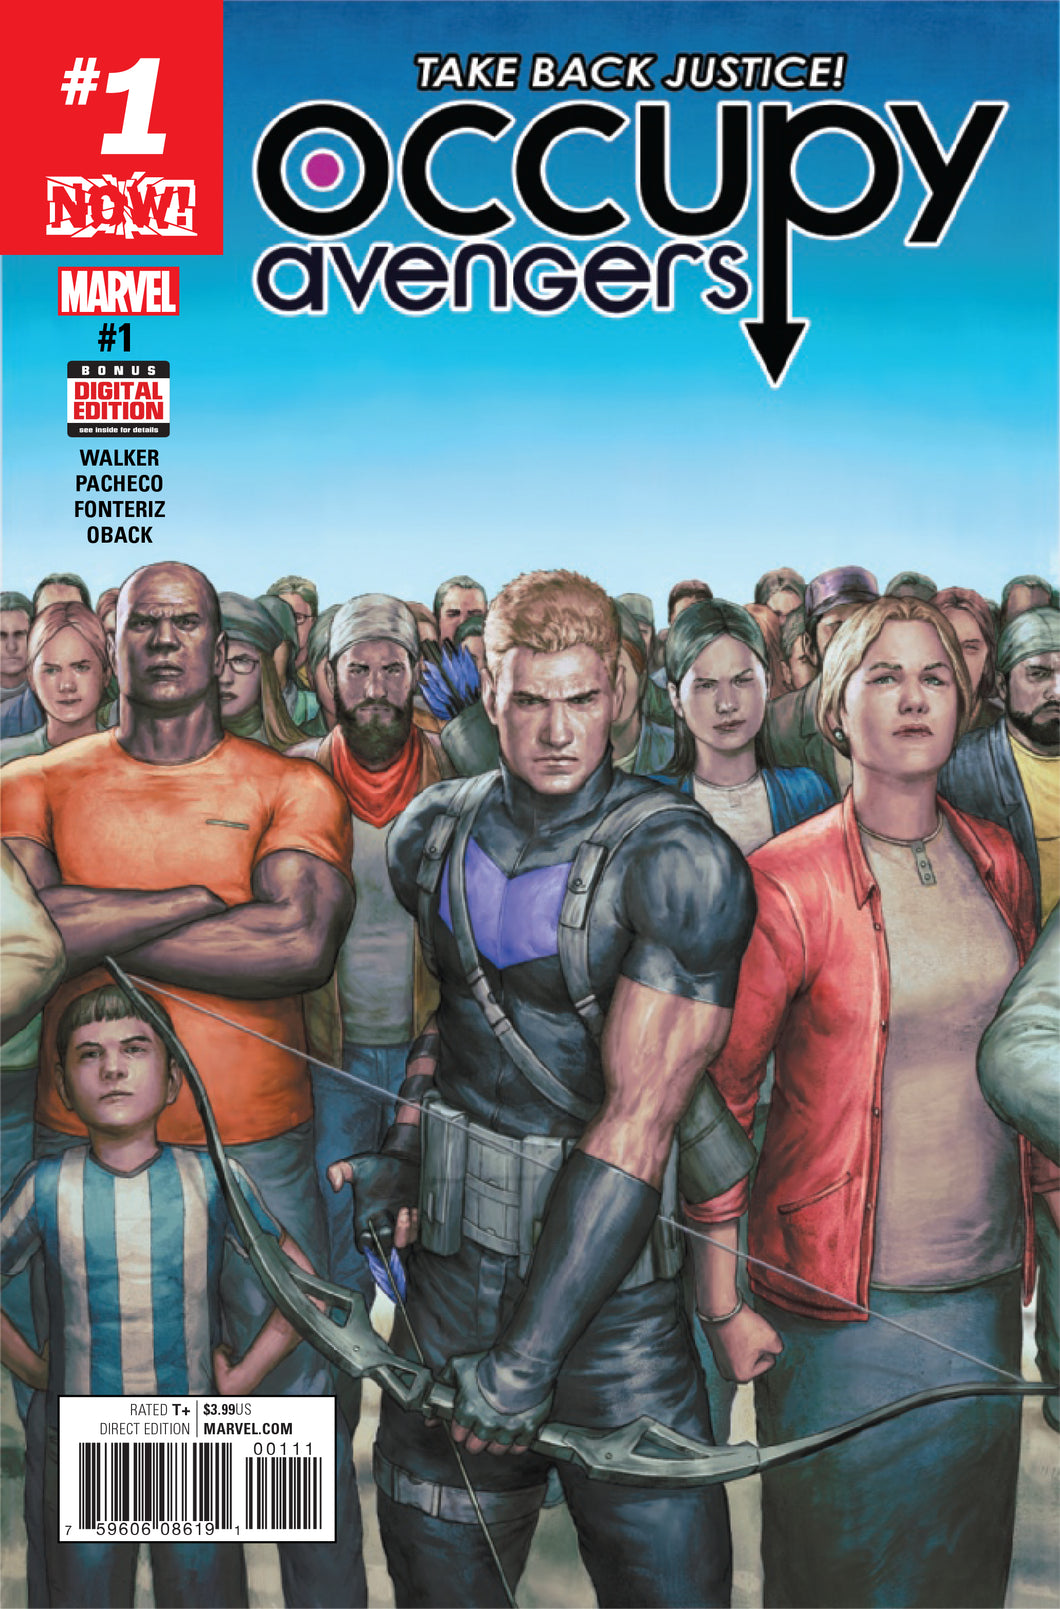 Now Occupy Avengers #1